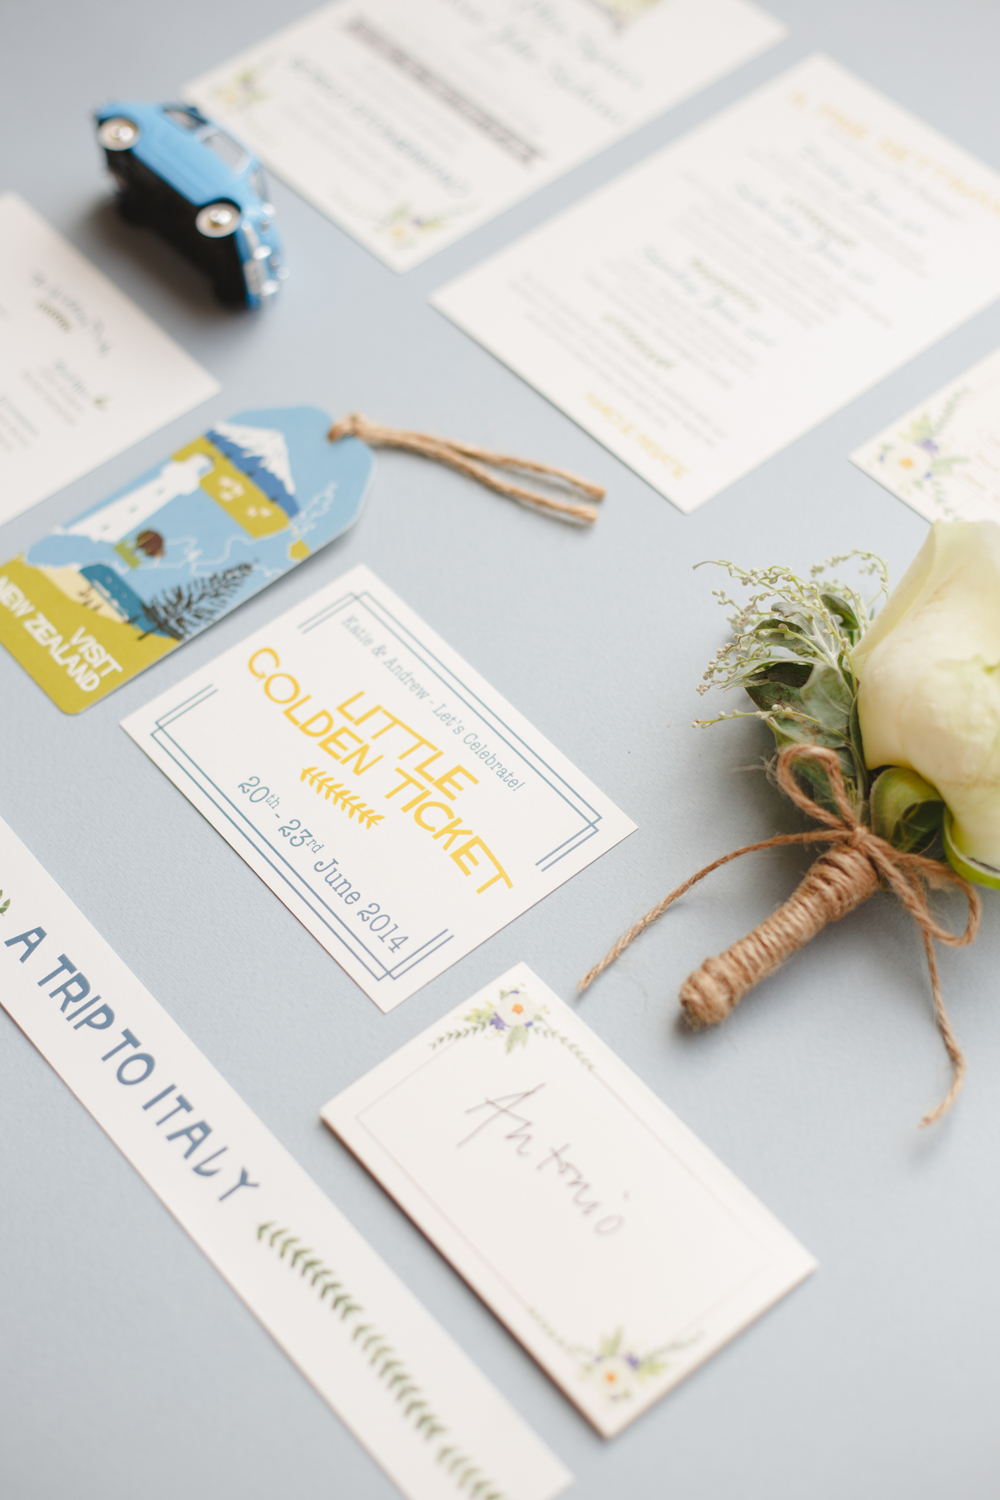 Katie and Andrew's bespoke, watercolour wedding stationery for their weding at Borgo Stomannano, Italy